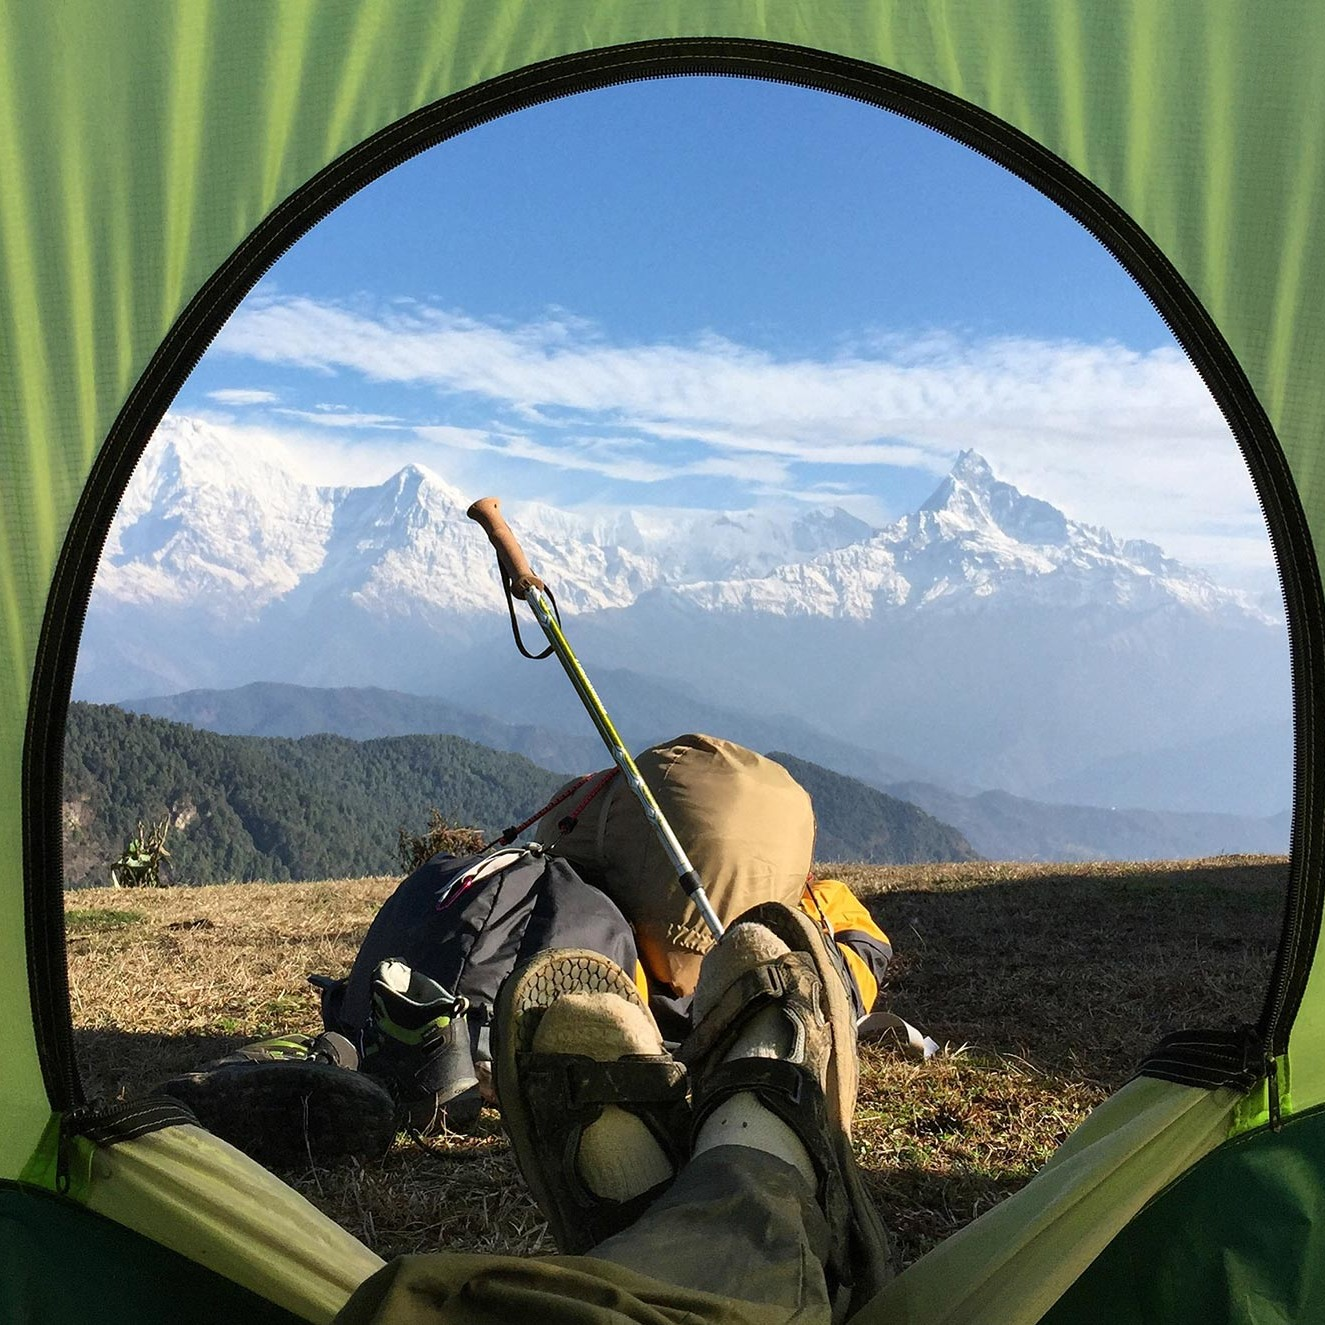 Abdulwahab-Abuhaimed-Door-to-Nepal-CampTrend